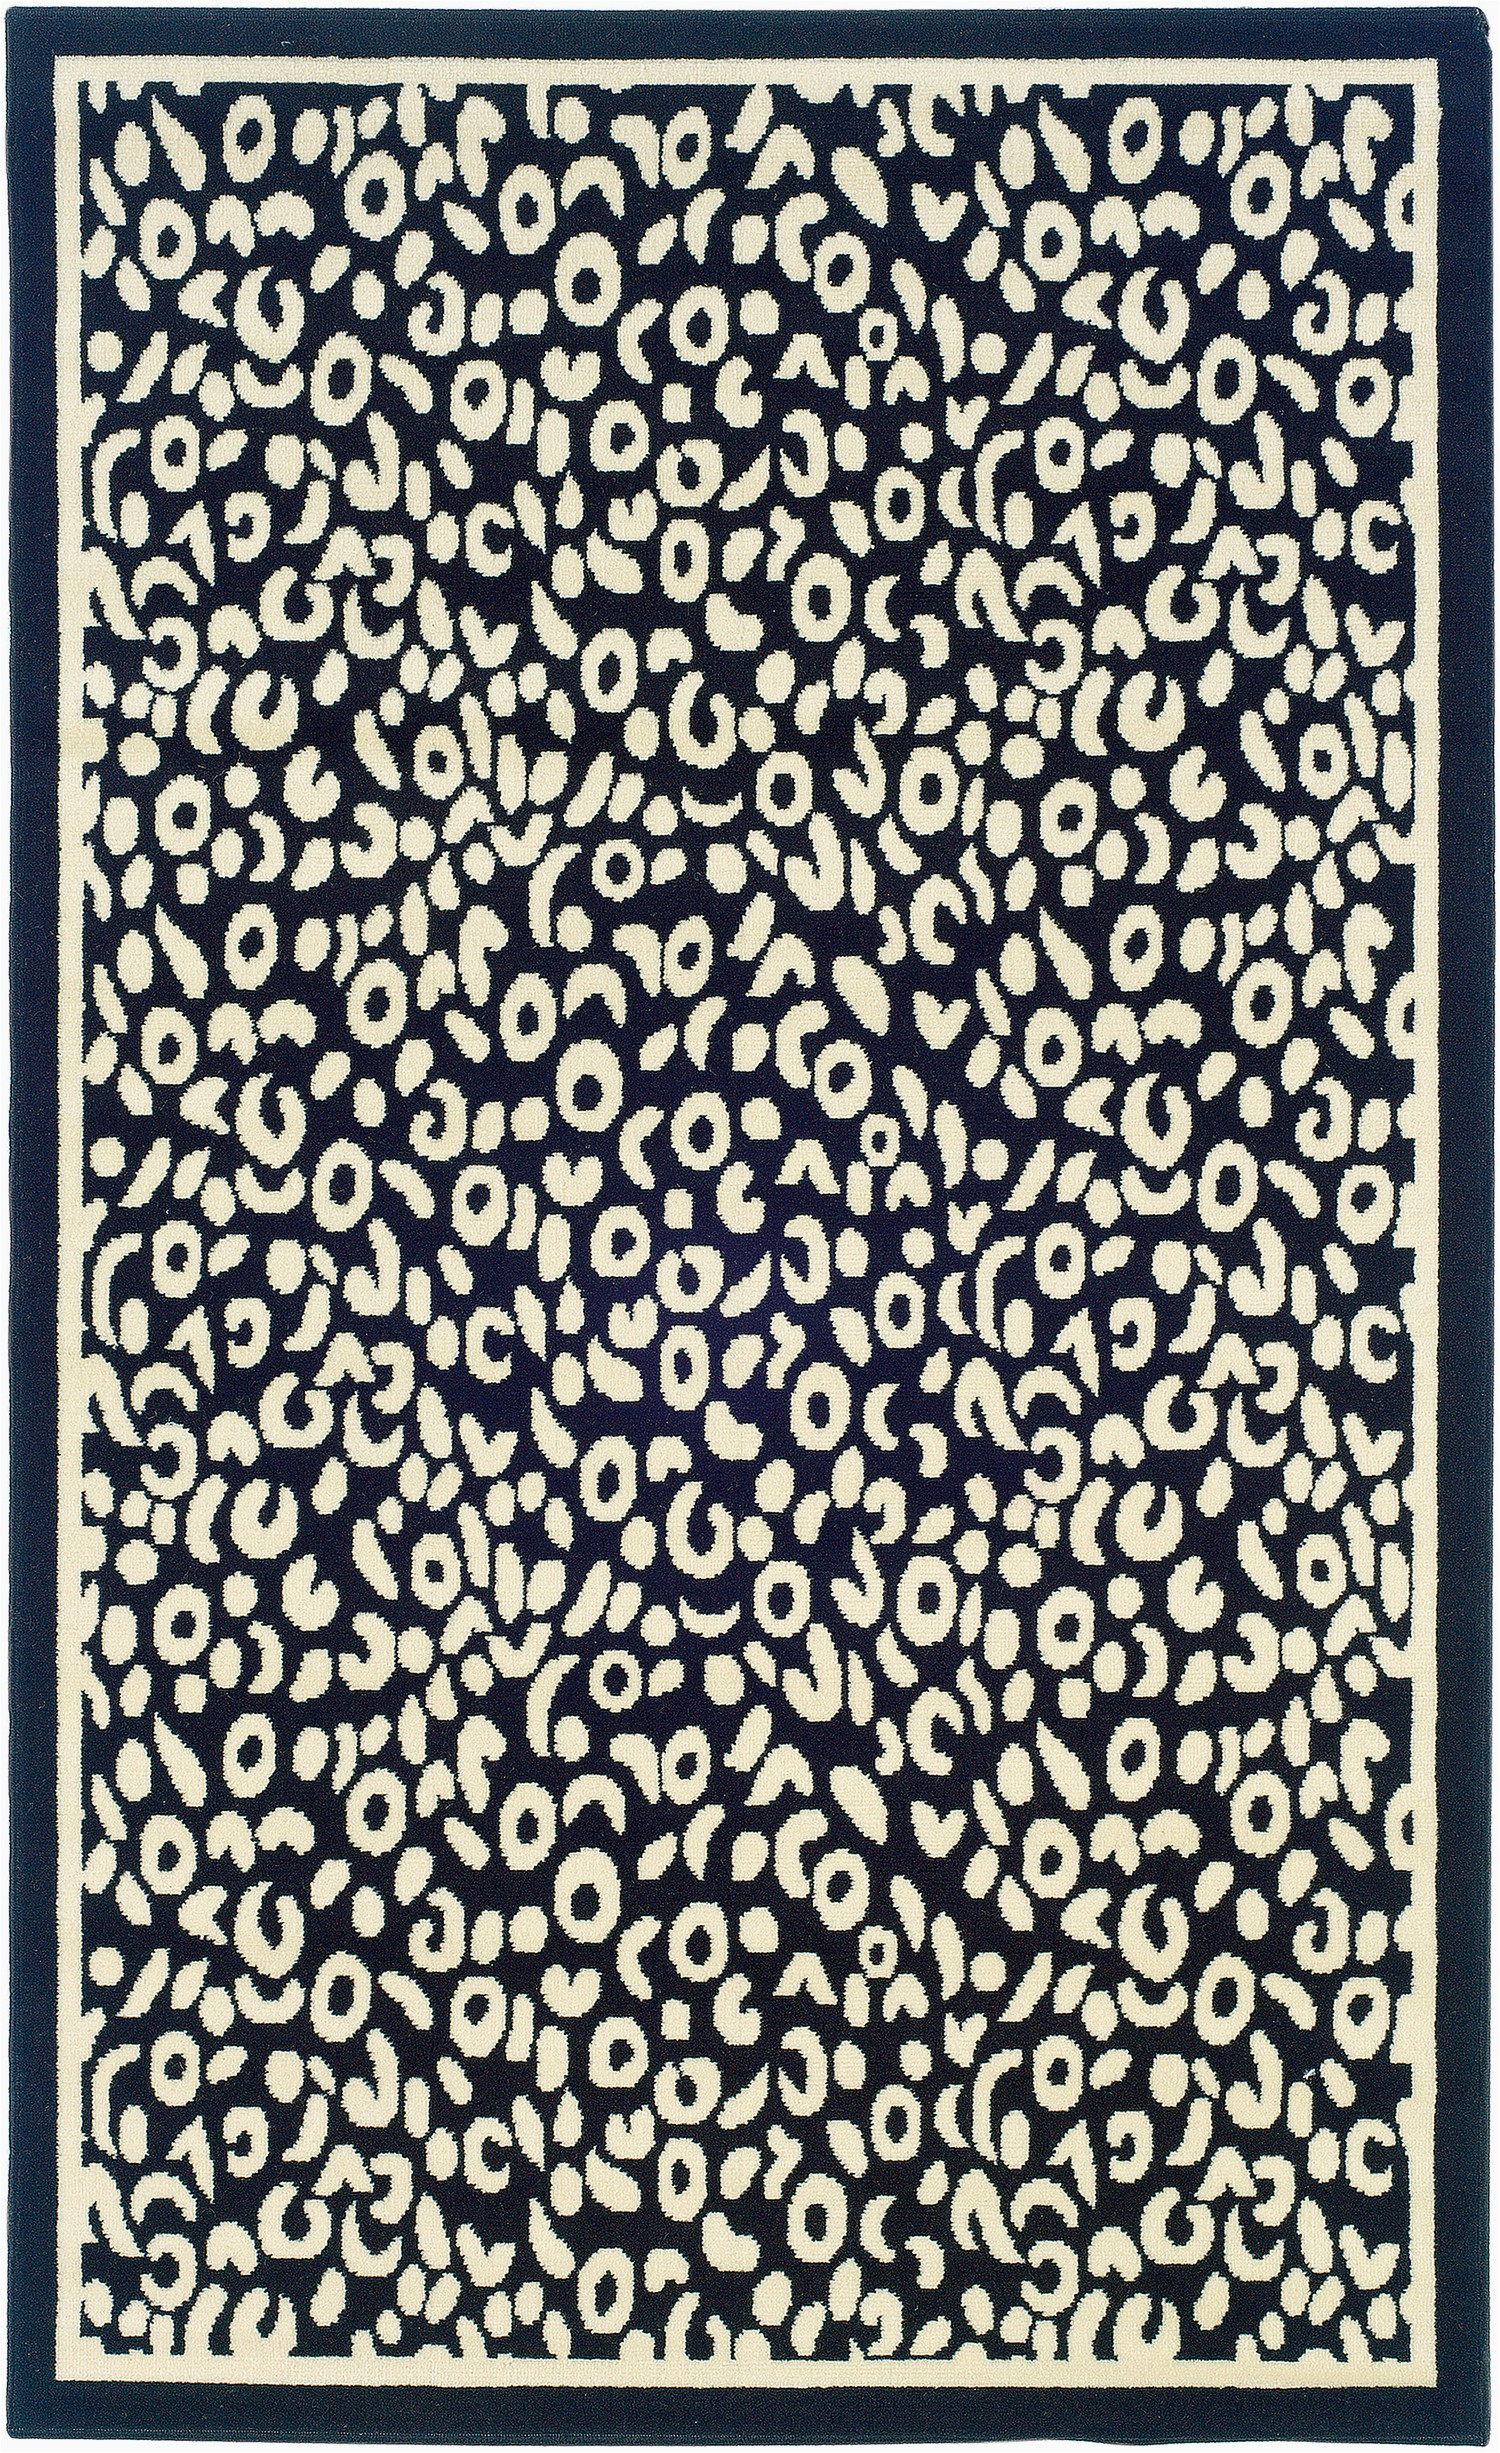 Blue Leopard Print Rug Linon Blue Animal Print Rug 2 From the Animal Print Rugs